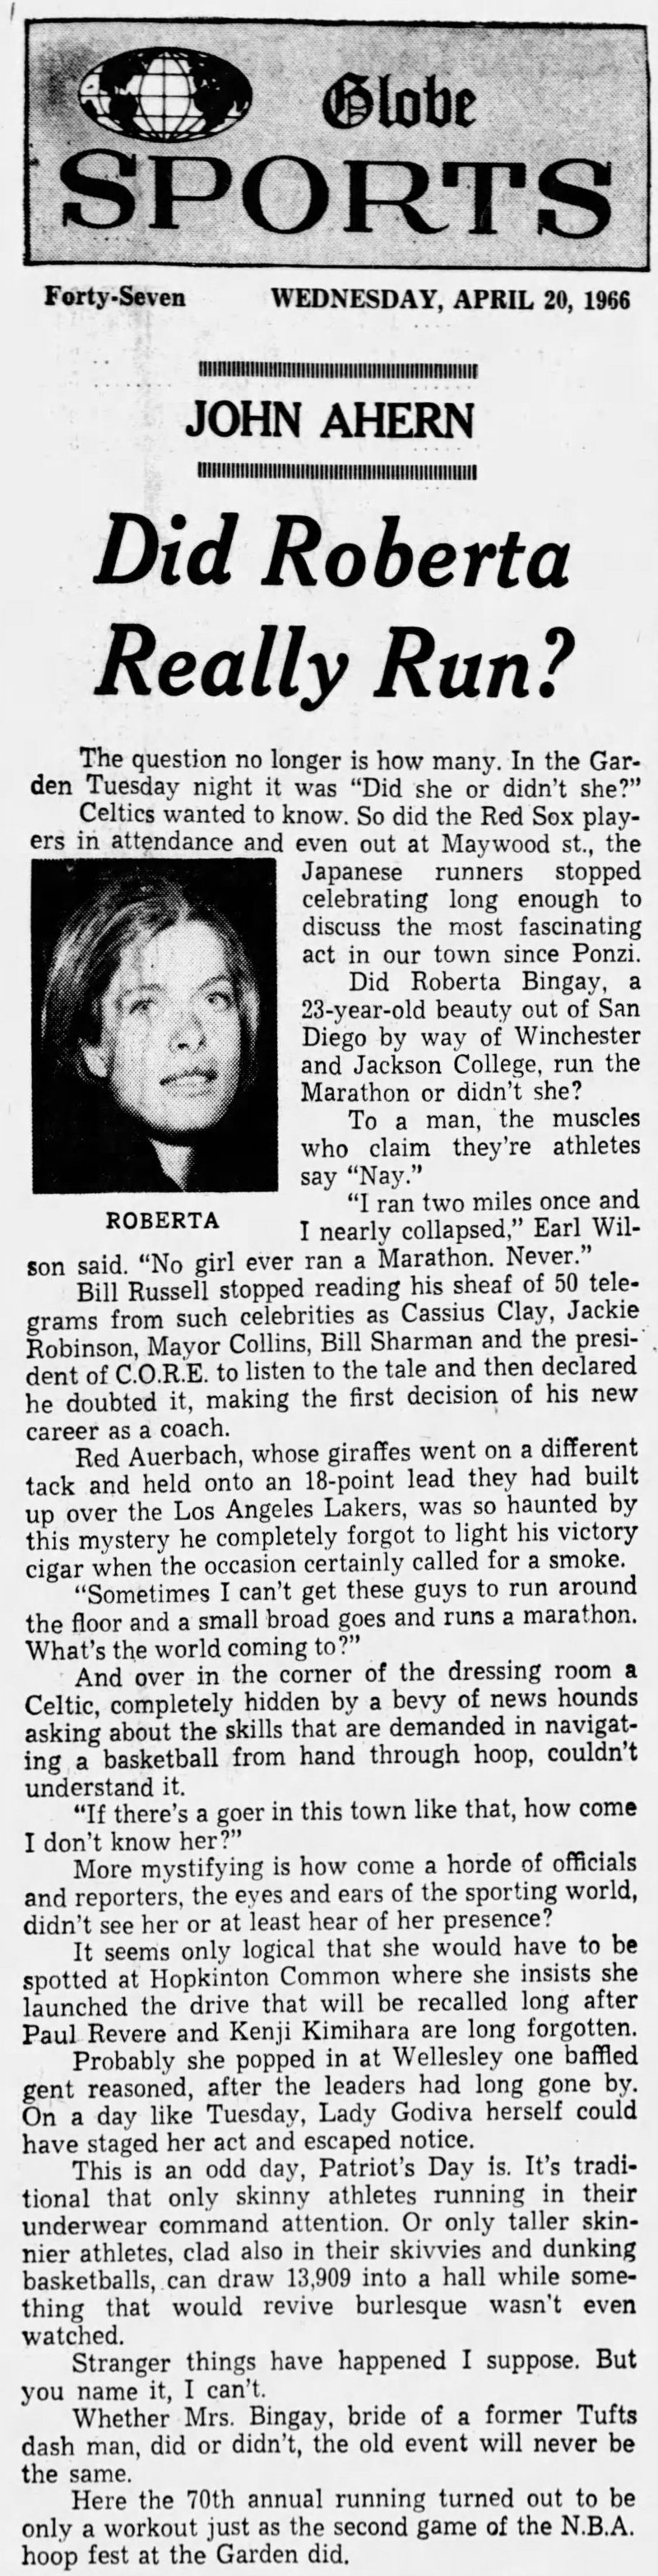 1966 news clipping about Bobbi Gibb - Boston Marathon